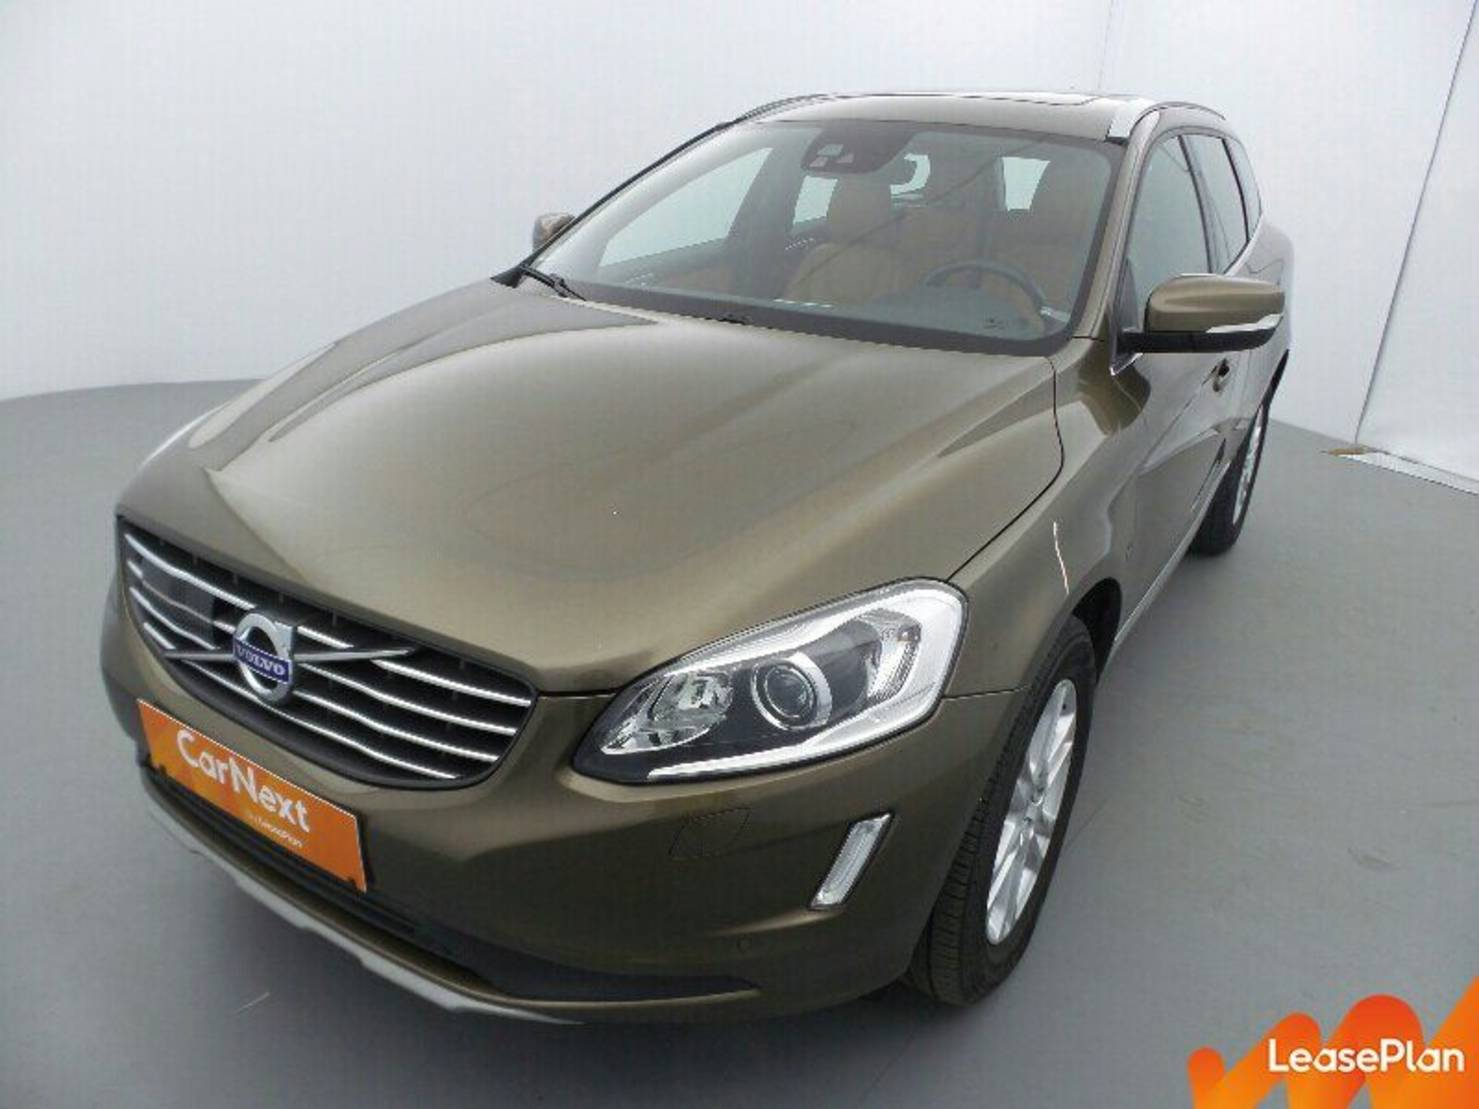 Volvo XC60 D4 190 Geartronic Xenium detail1